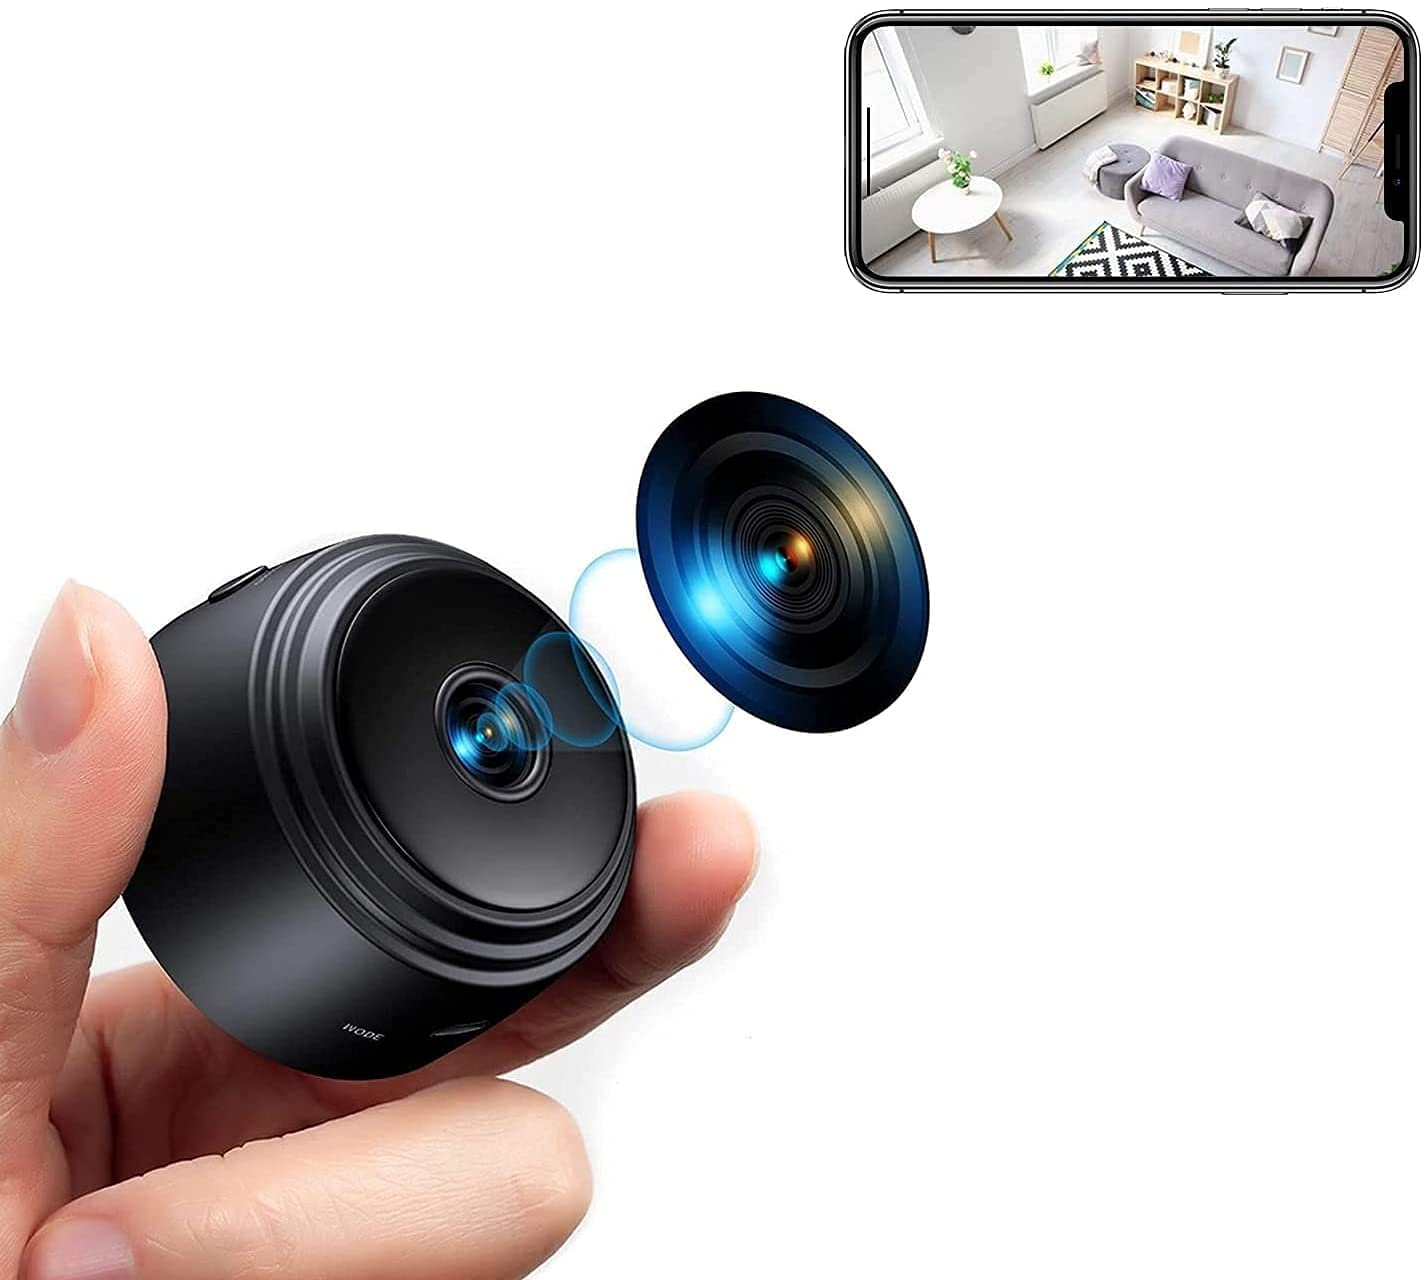 Mini WiFi Spy Camera 1080P, Wireless Hidden Spy Cam Audio and Video Recording Live Feed,Nanny Camera with Night Vision and Motion Detectio, (2021 Upgraded Phone APP)